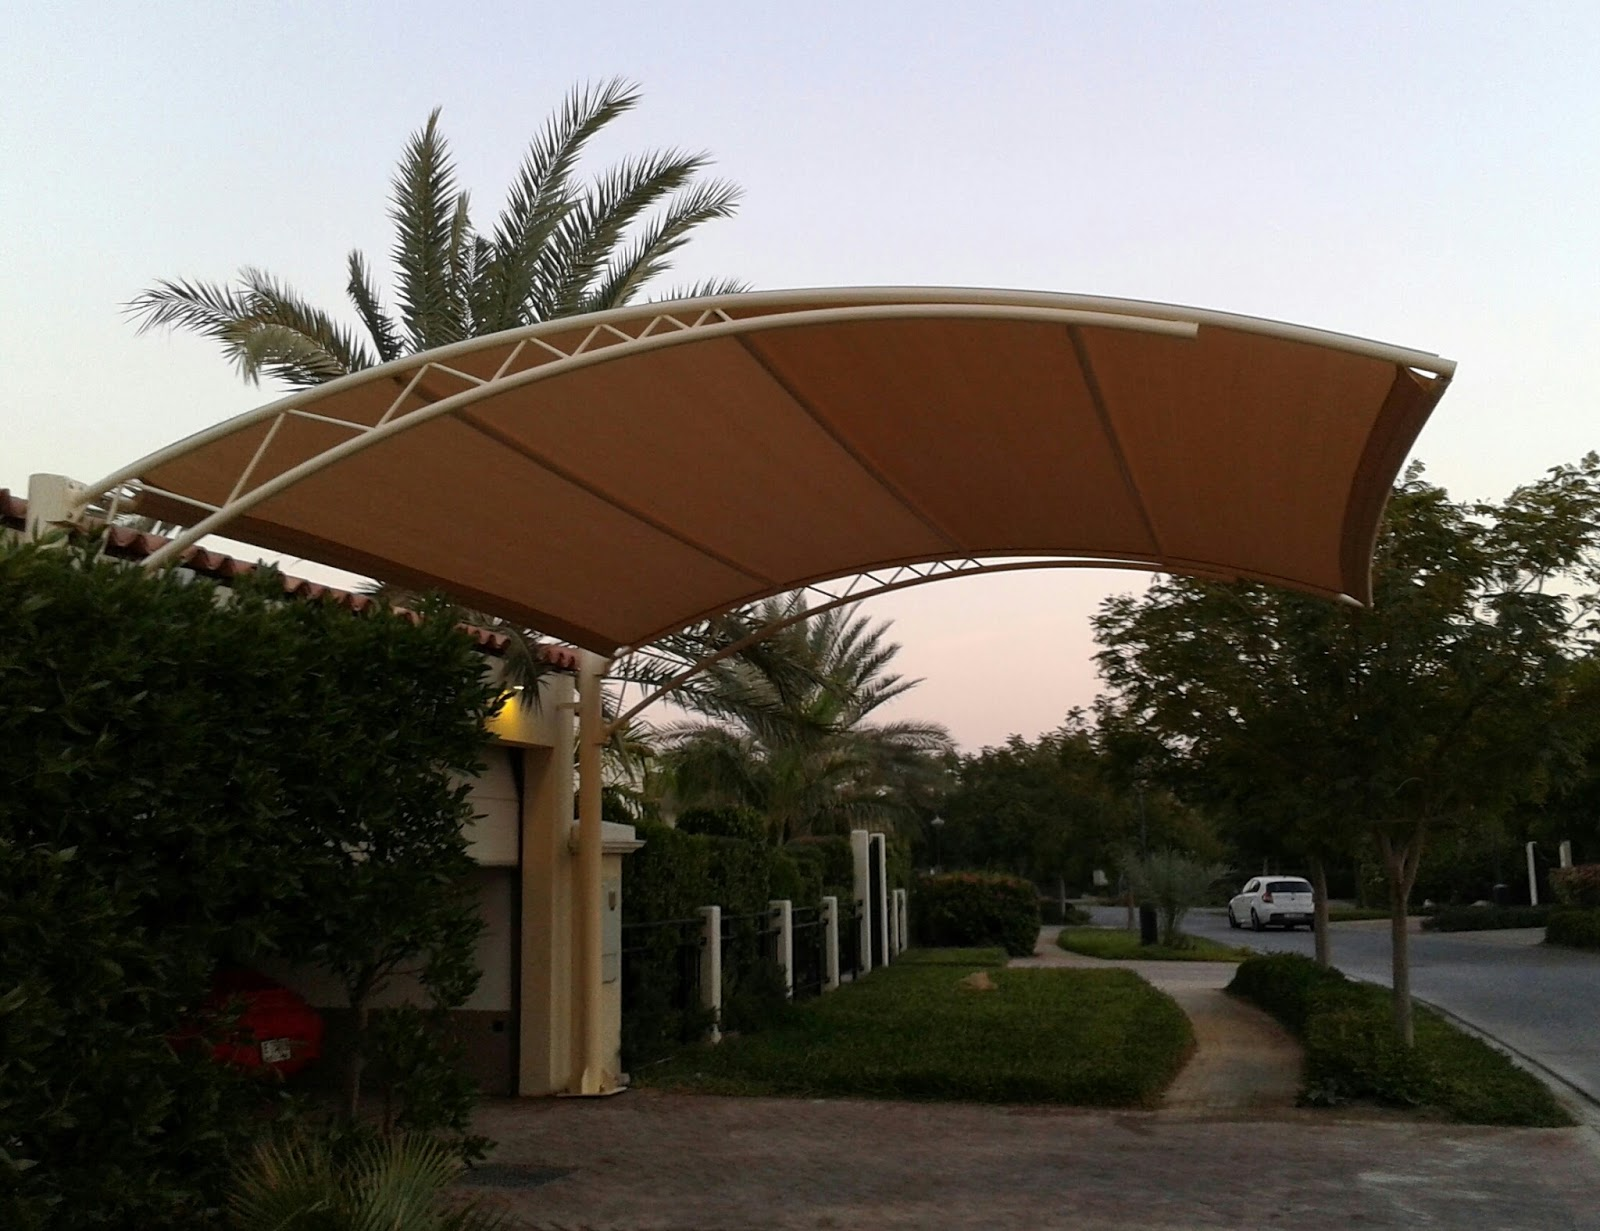 Car Parking Shades Suppliers In Uae Car Park Shades Tents Awnings Canopies Swimming Pool